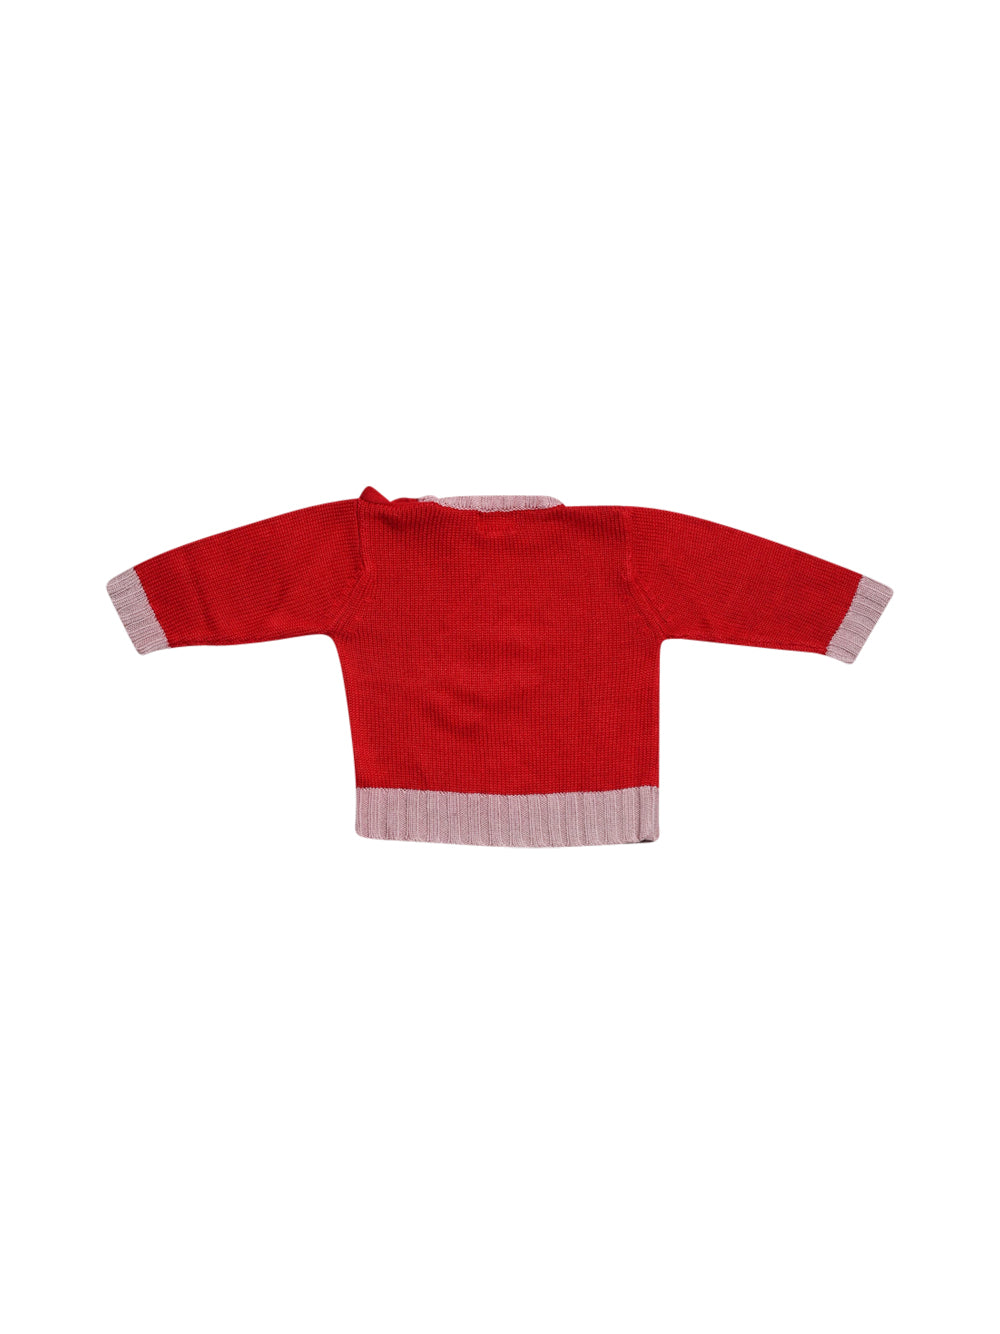 Back photo of Preloved P'tites Canailles Red Boy's sweater - size 12-18 mths